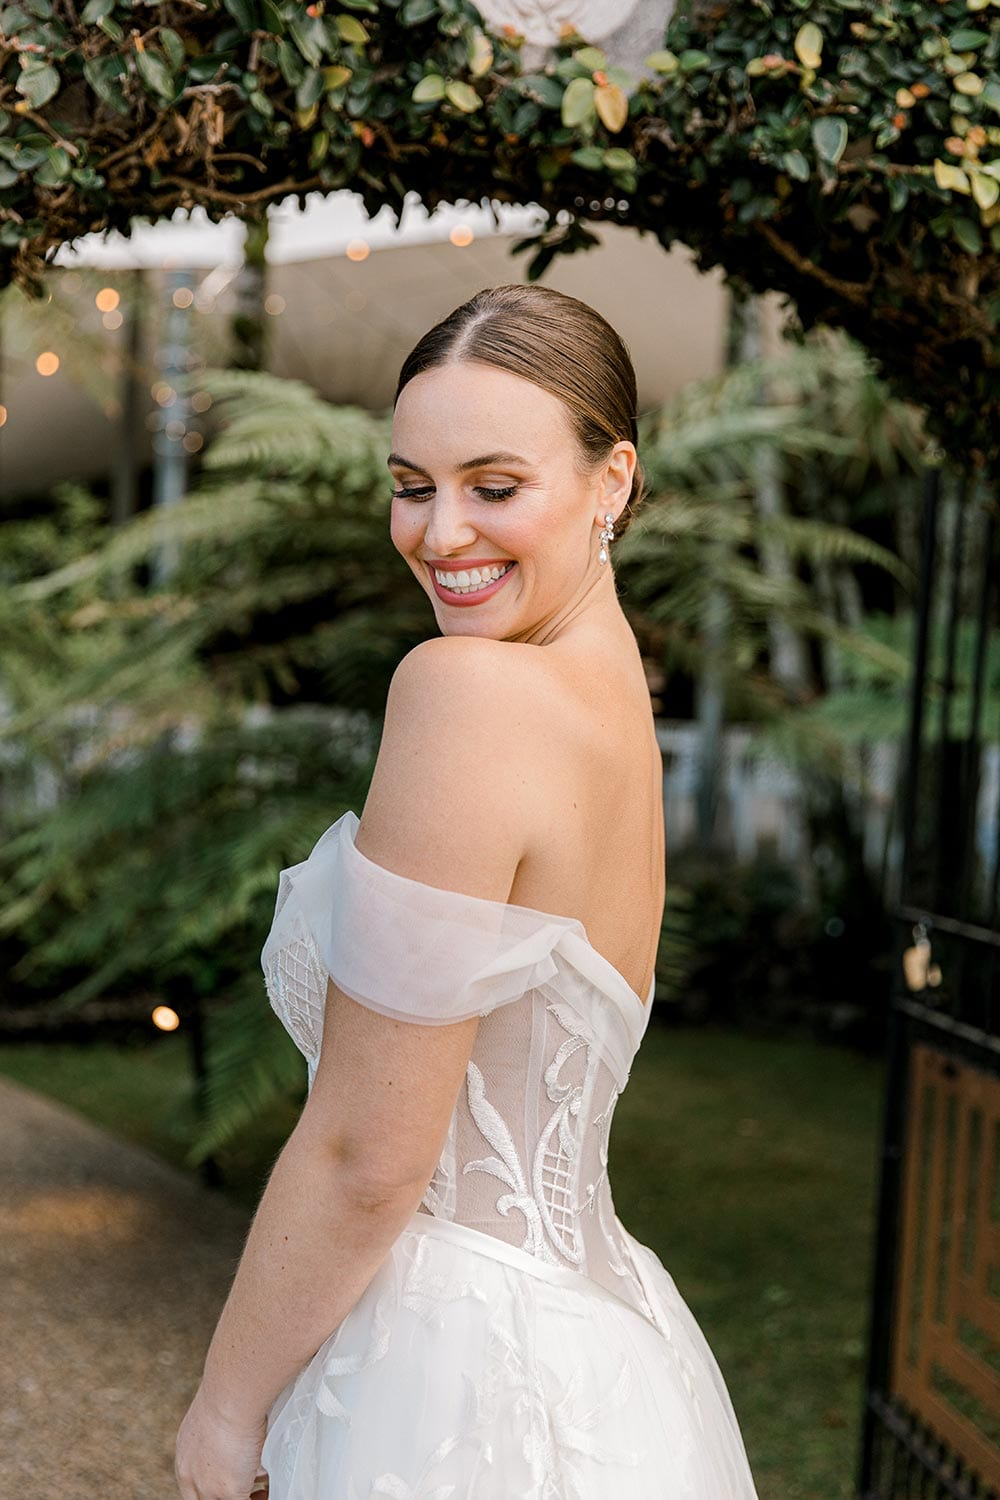 Zoe wedding dress by Vinka Design - a romantic & dreamy off-shoulder gown with a structured, boned bodice, a full lace & tulle skirt. Semi-sheer bodice with tulle off-shoulder detailing and satin belt. Worn in green garden archway, model looking back over shoulder close up.